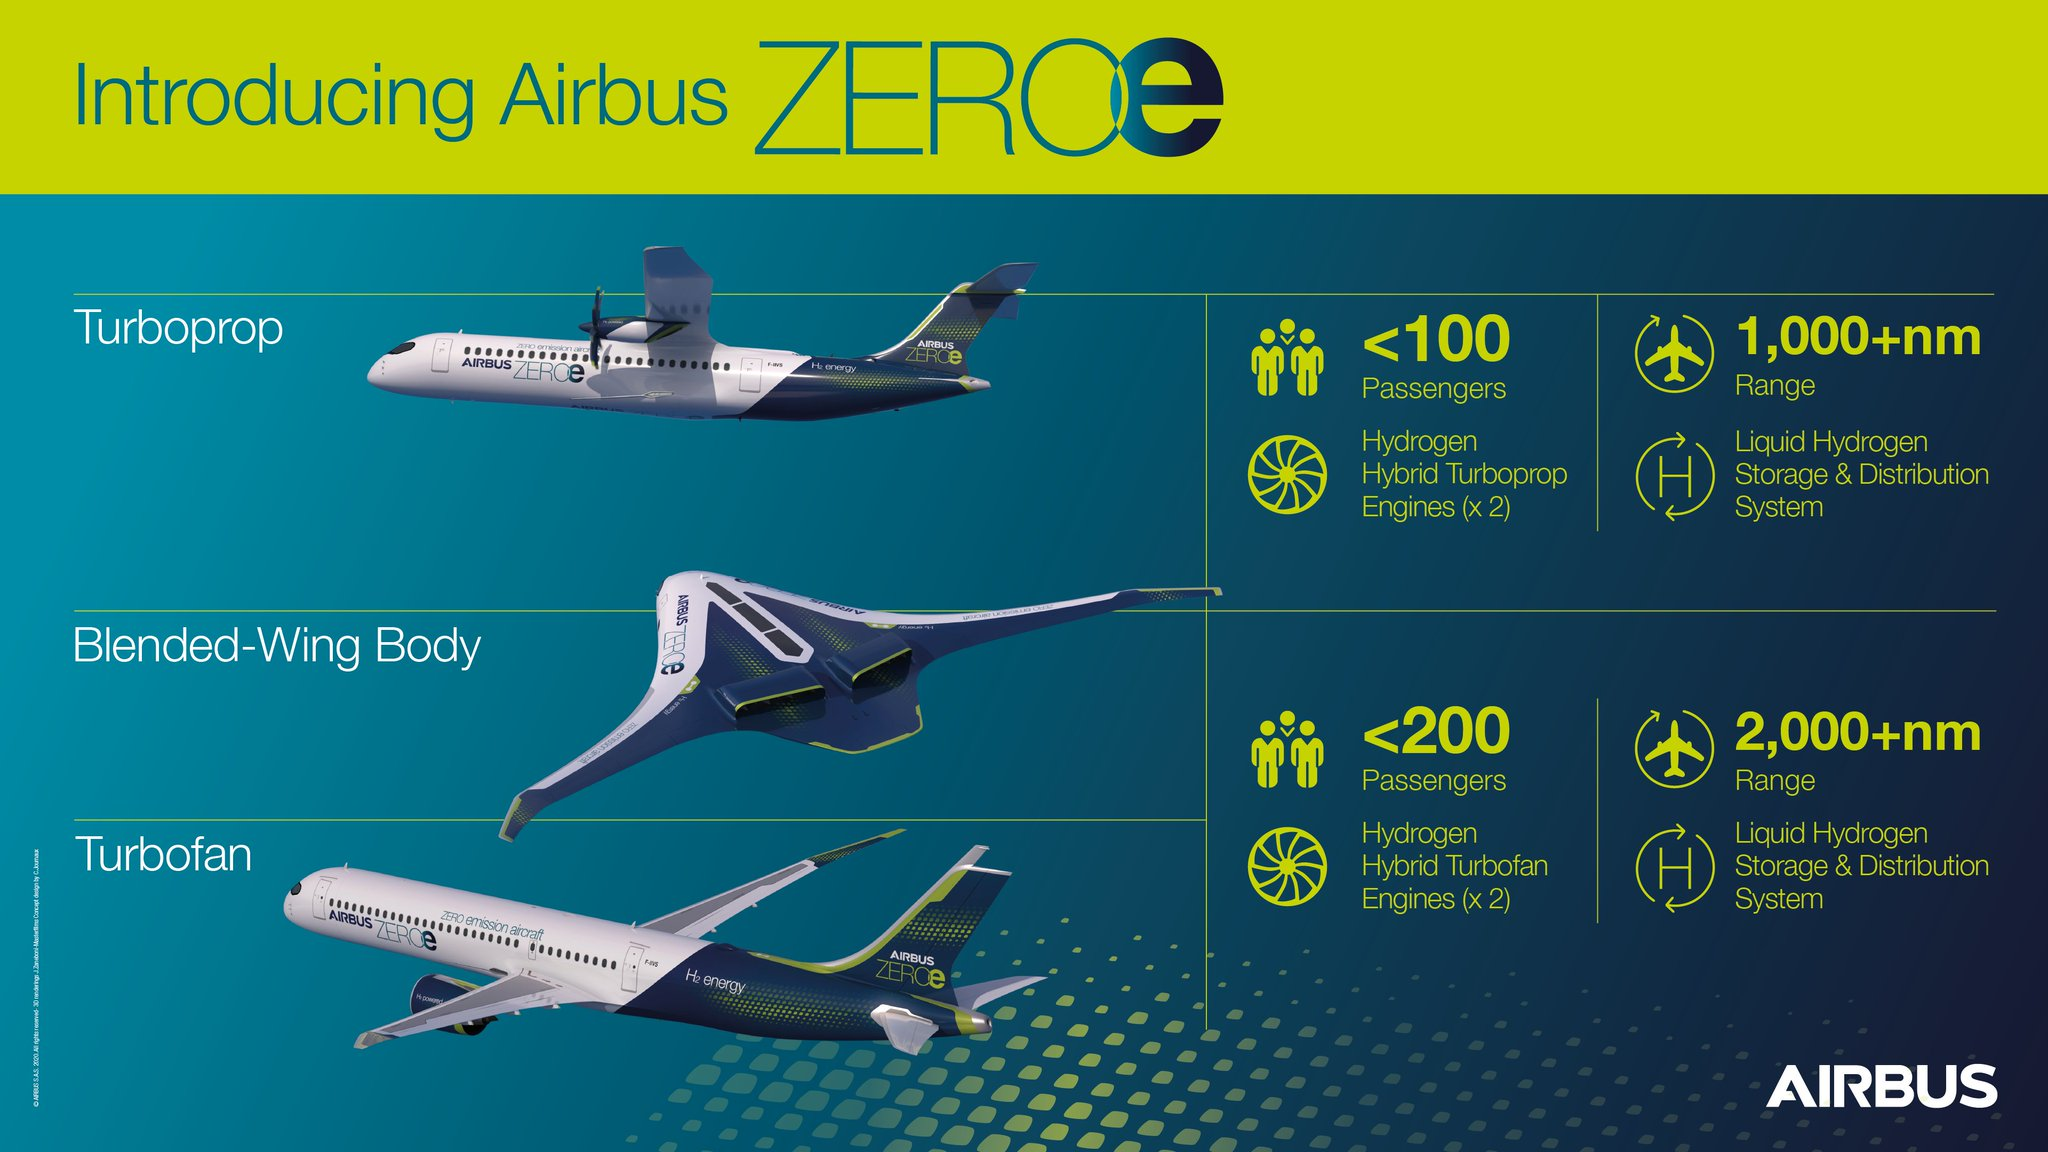 "Airbus on Twitter: ""So excited to have shared our #zeroe concept aircraft  with you! Missed it? We've got you covered. Check this out 👇 But this is  only the beginning. Stay tuned"